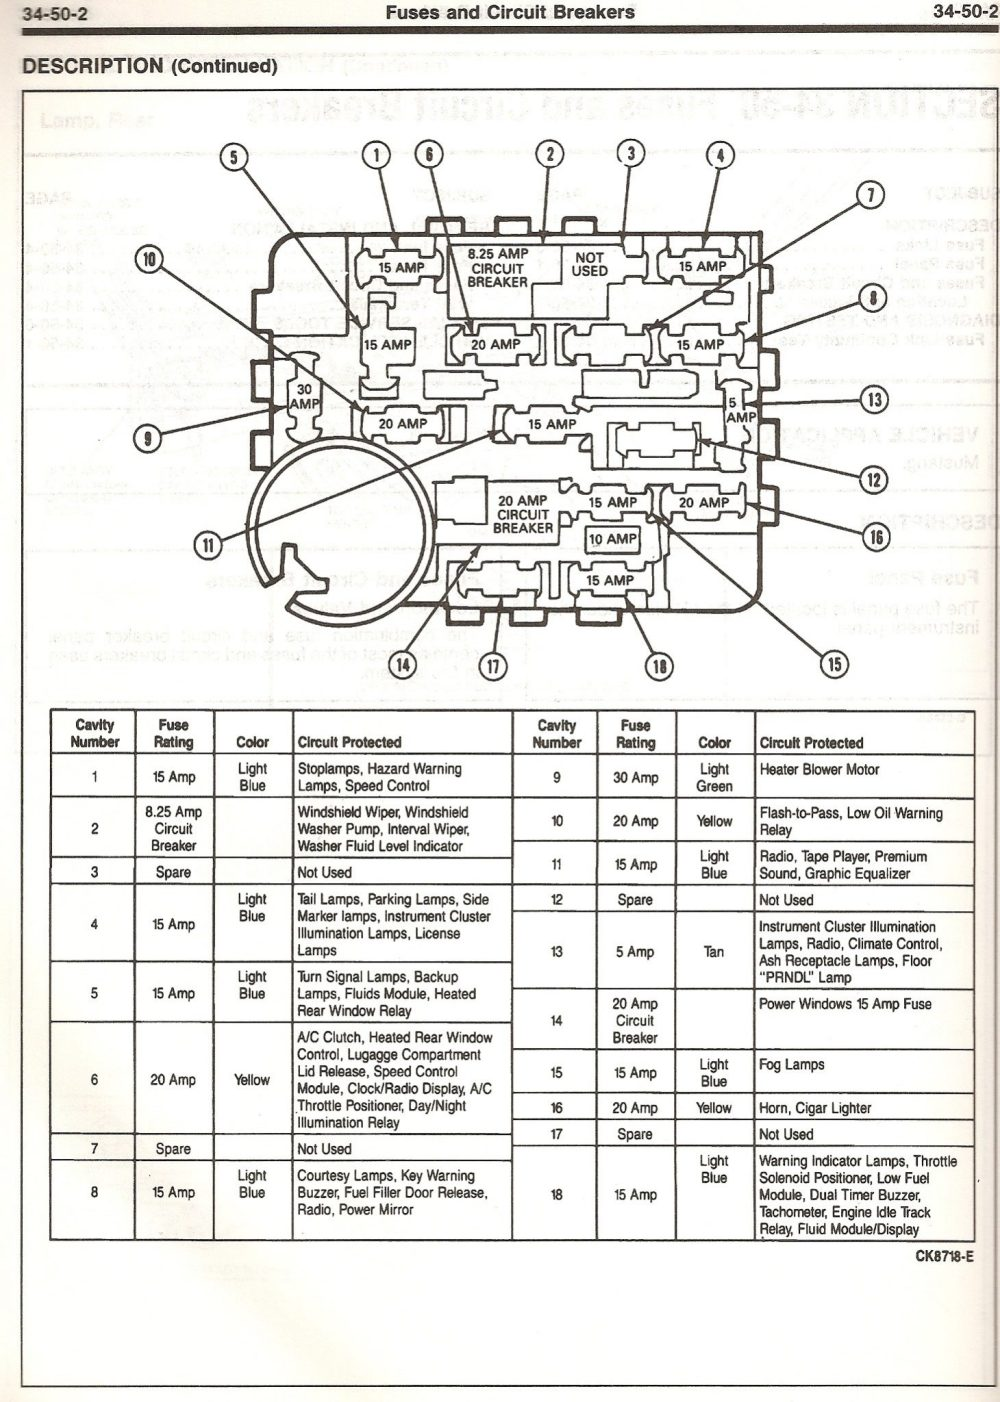 medium resolution of 92 mustang fuse box diagram wiring diagram sheet audi a4 b5 fuse box diagram 90 240sx